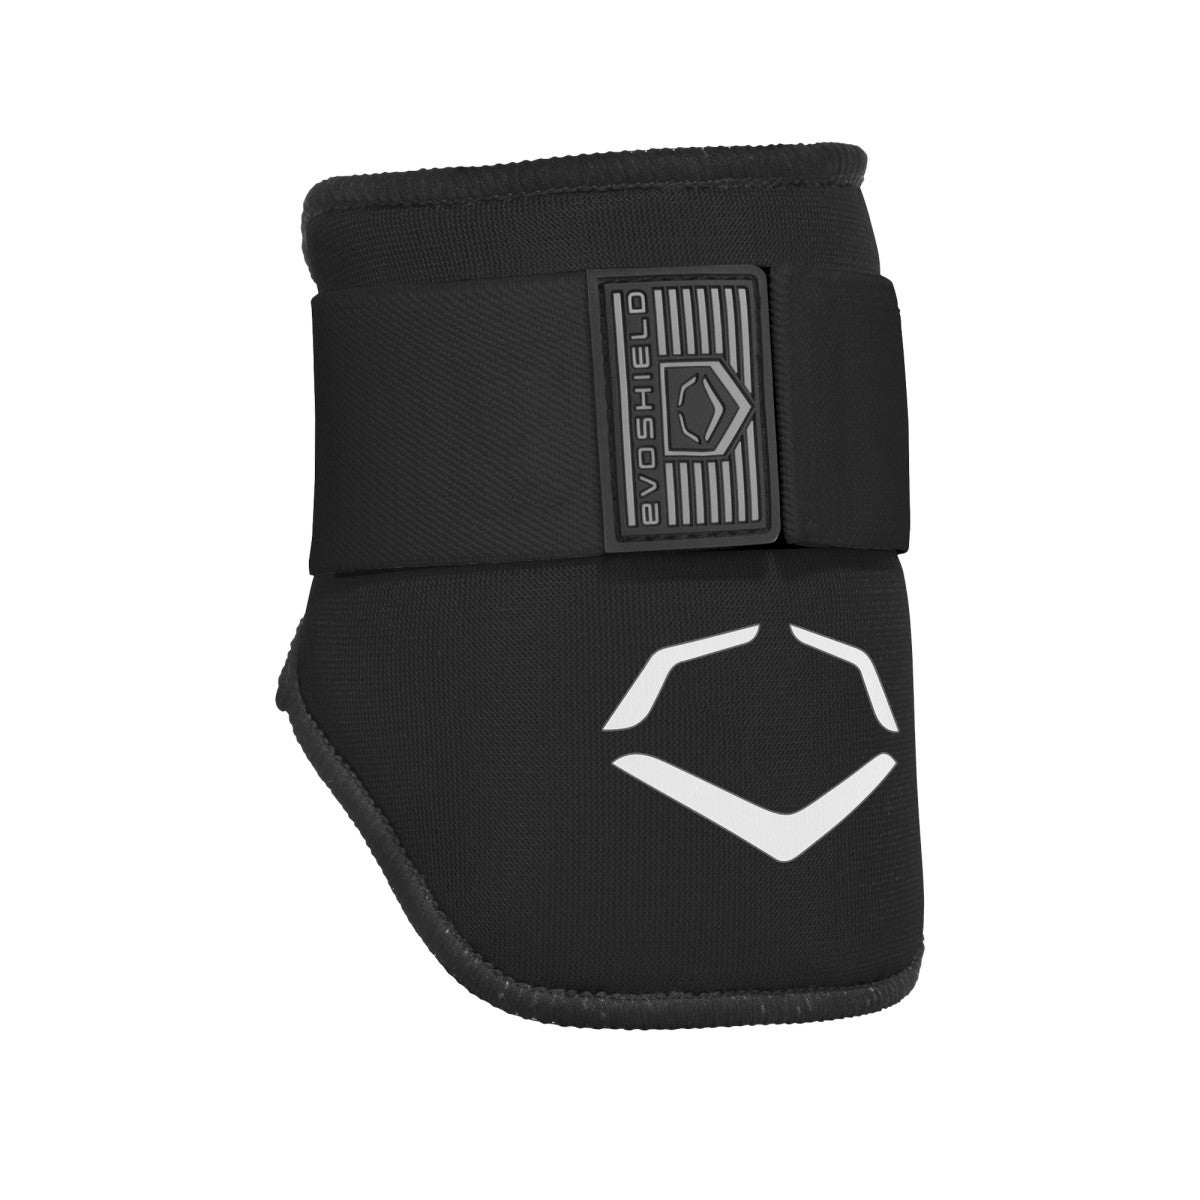 EvoX Limited Edition BLACKOUT Batter's Elbow Guard